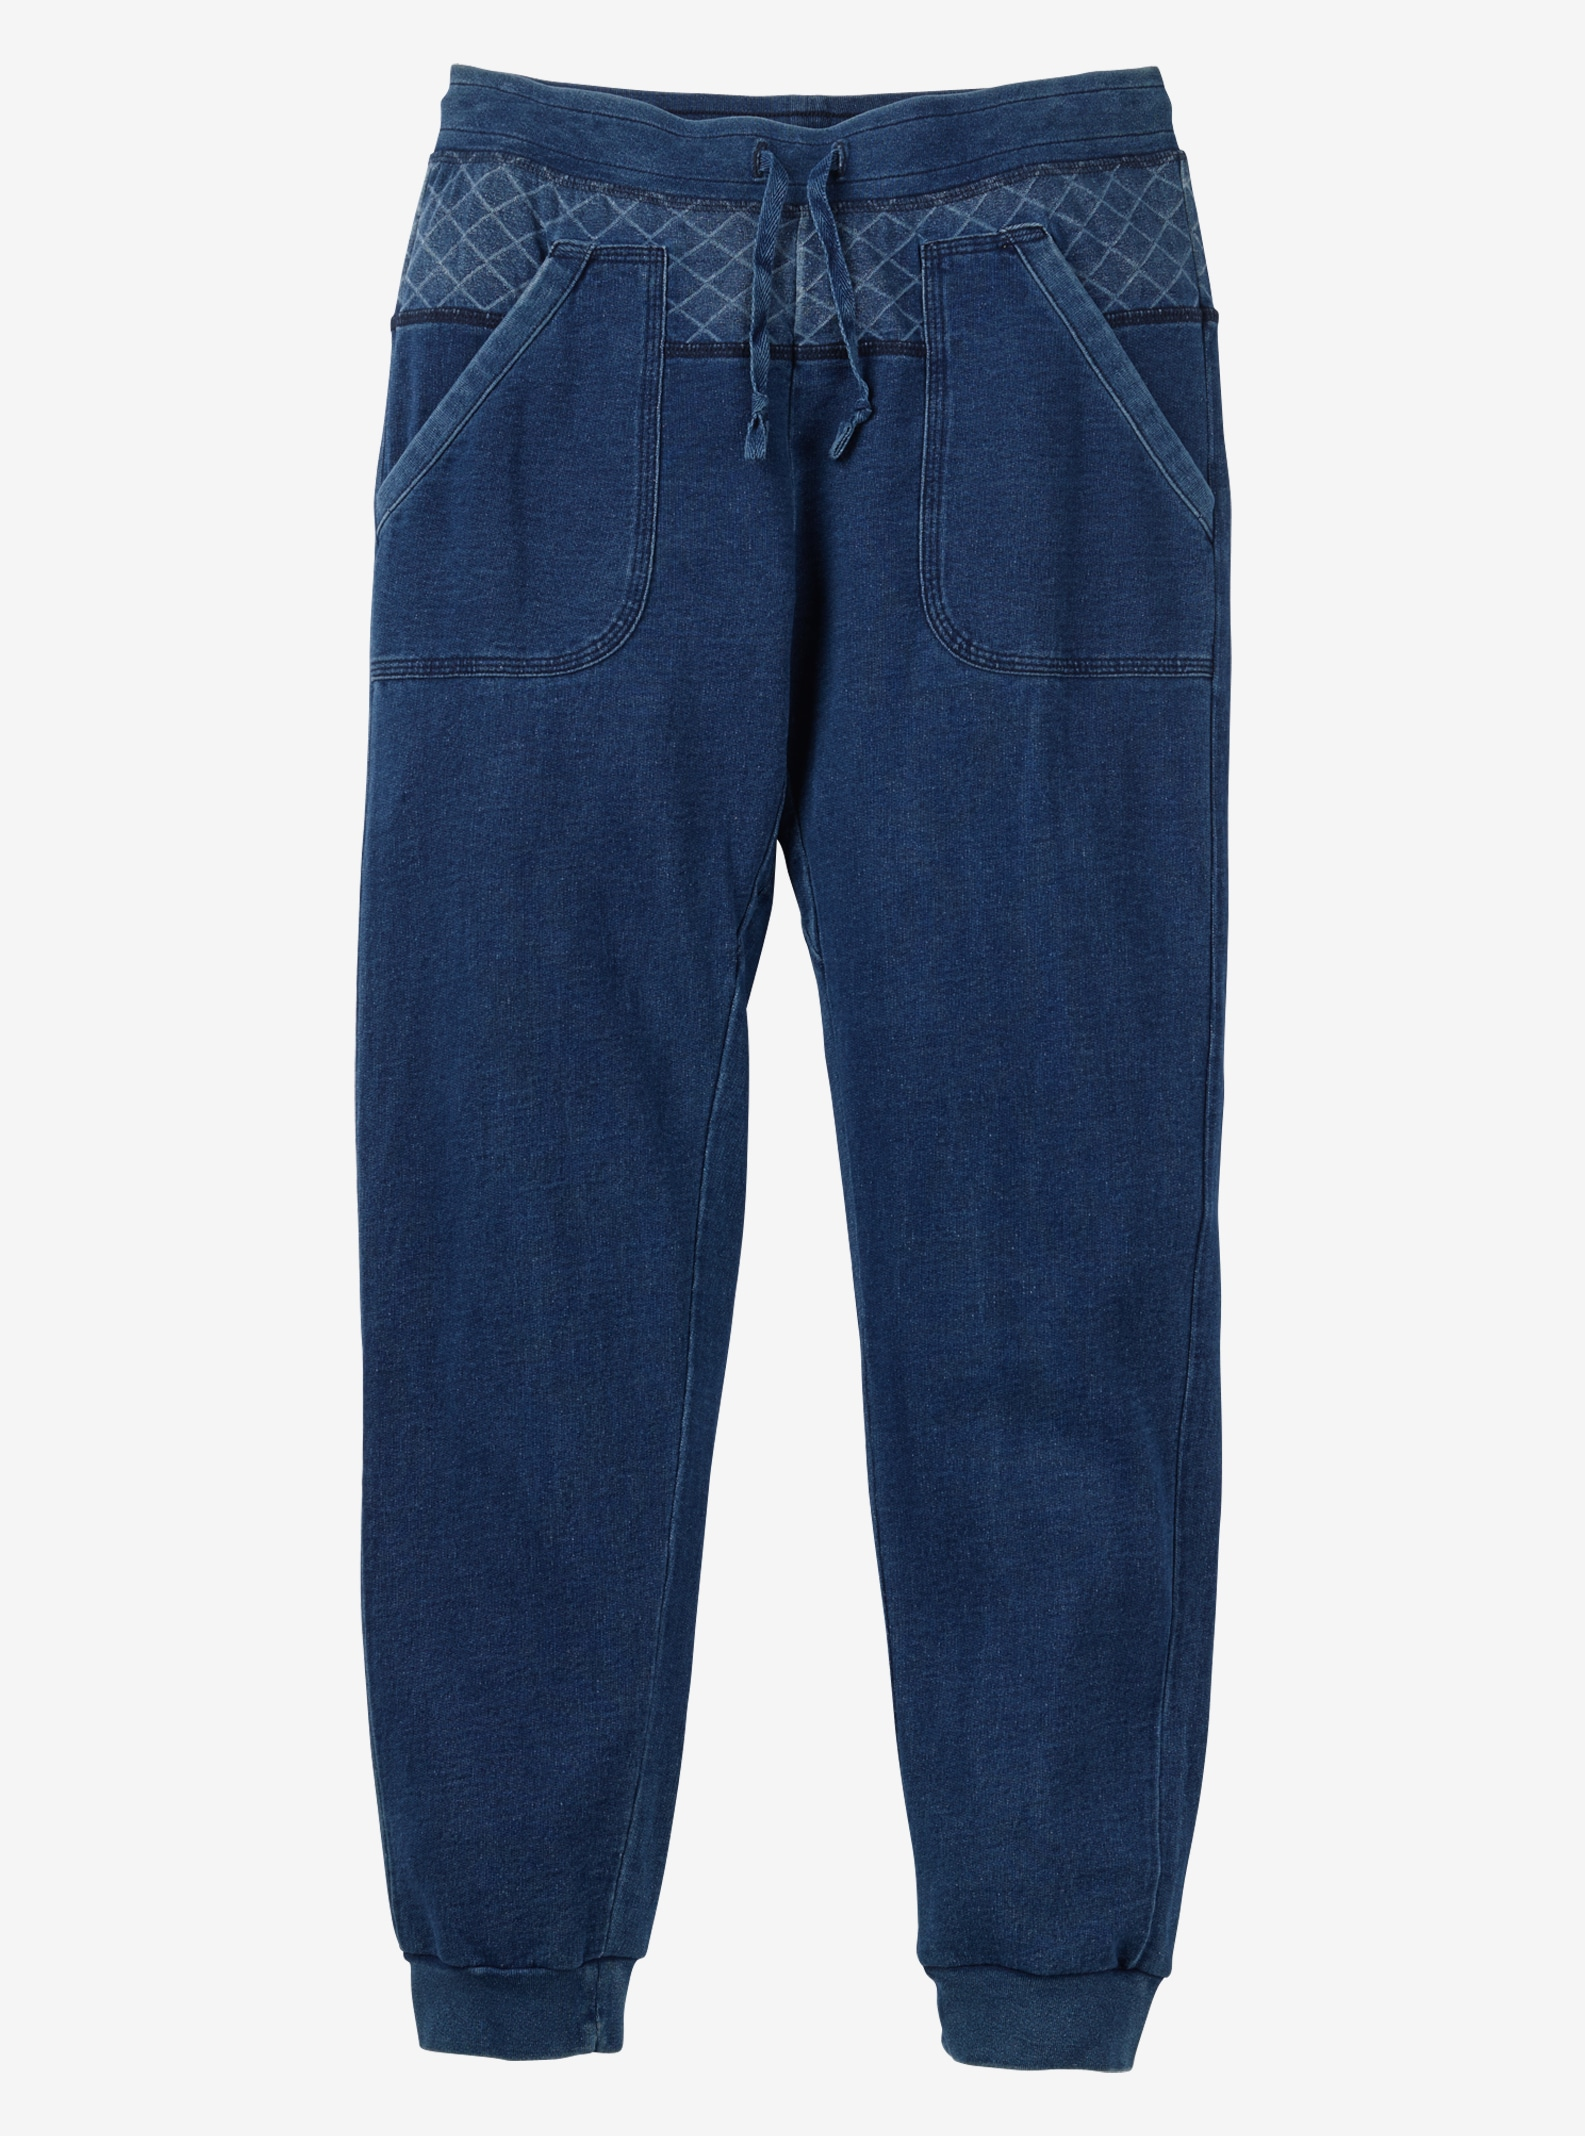 Burton Noonmark Pant shown in Indigo